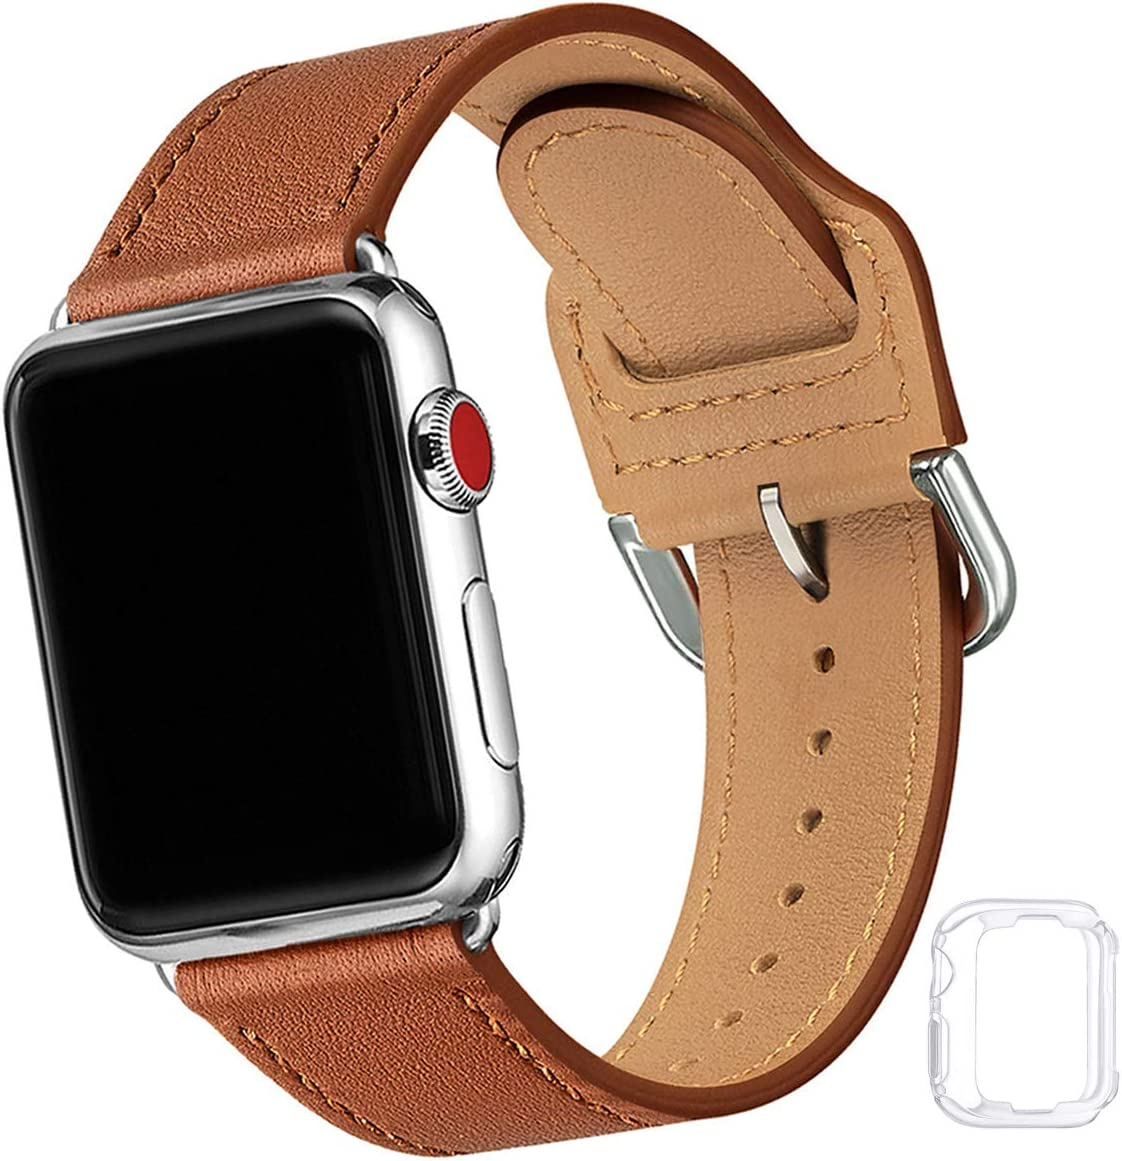 Compatible with Apple Watch Band 38mm 40mm 42mm 44mm, Soft Leather Watch Band Replacement Strap for iWatch SE Series 6 5 4 3 2 1 (Brown with Silver, 38MM/40MM)